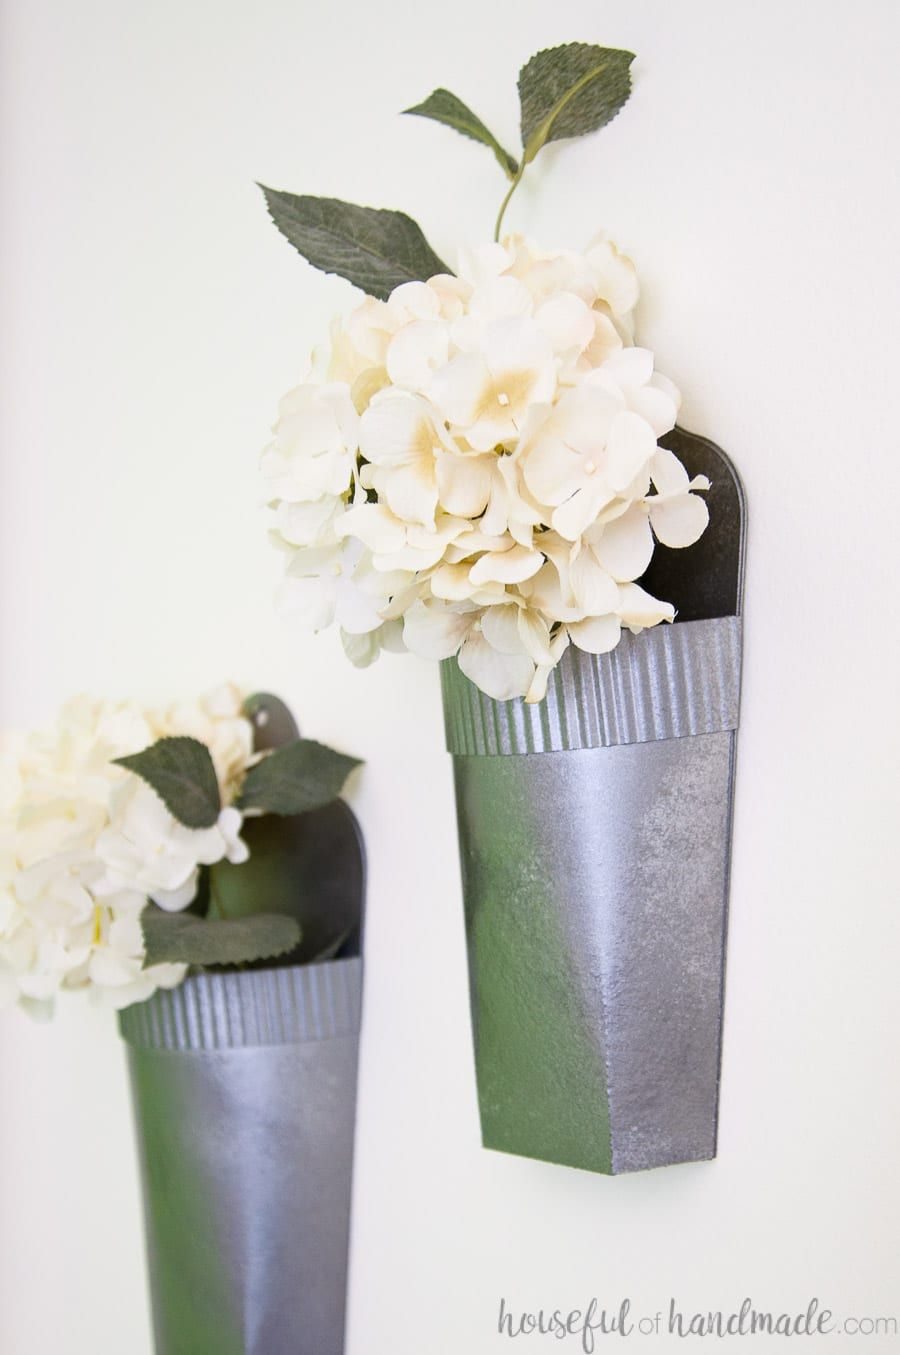 You Will Never Guess What These Amazing Metal Wall Vases Are Made